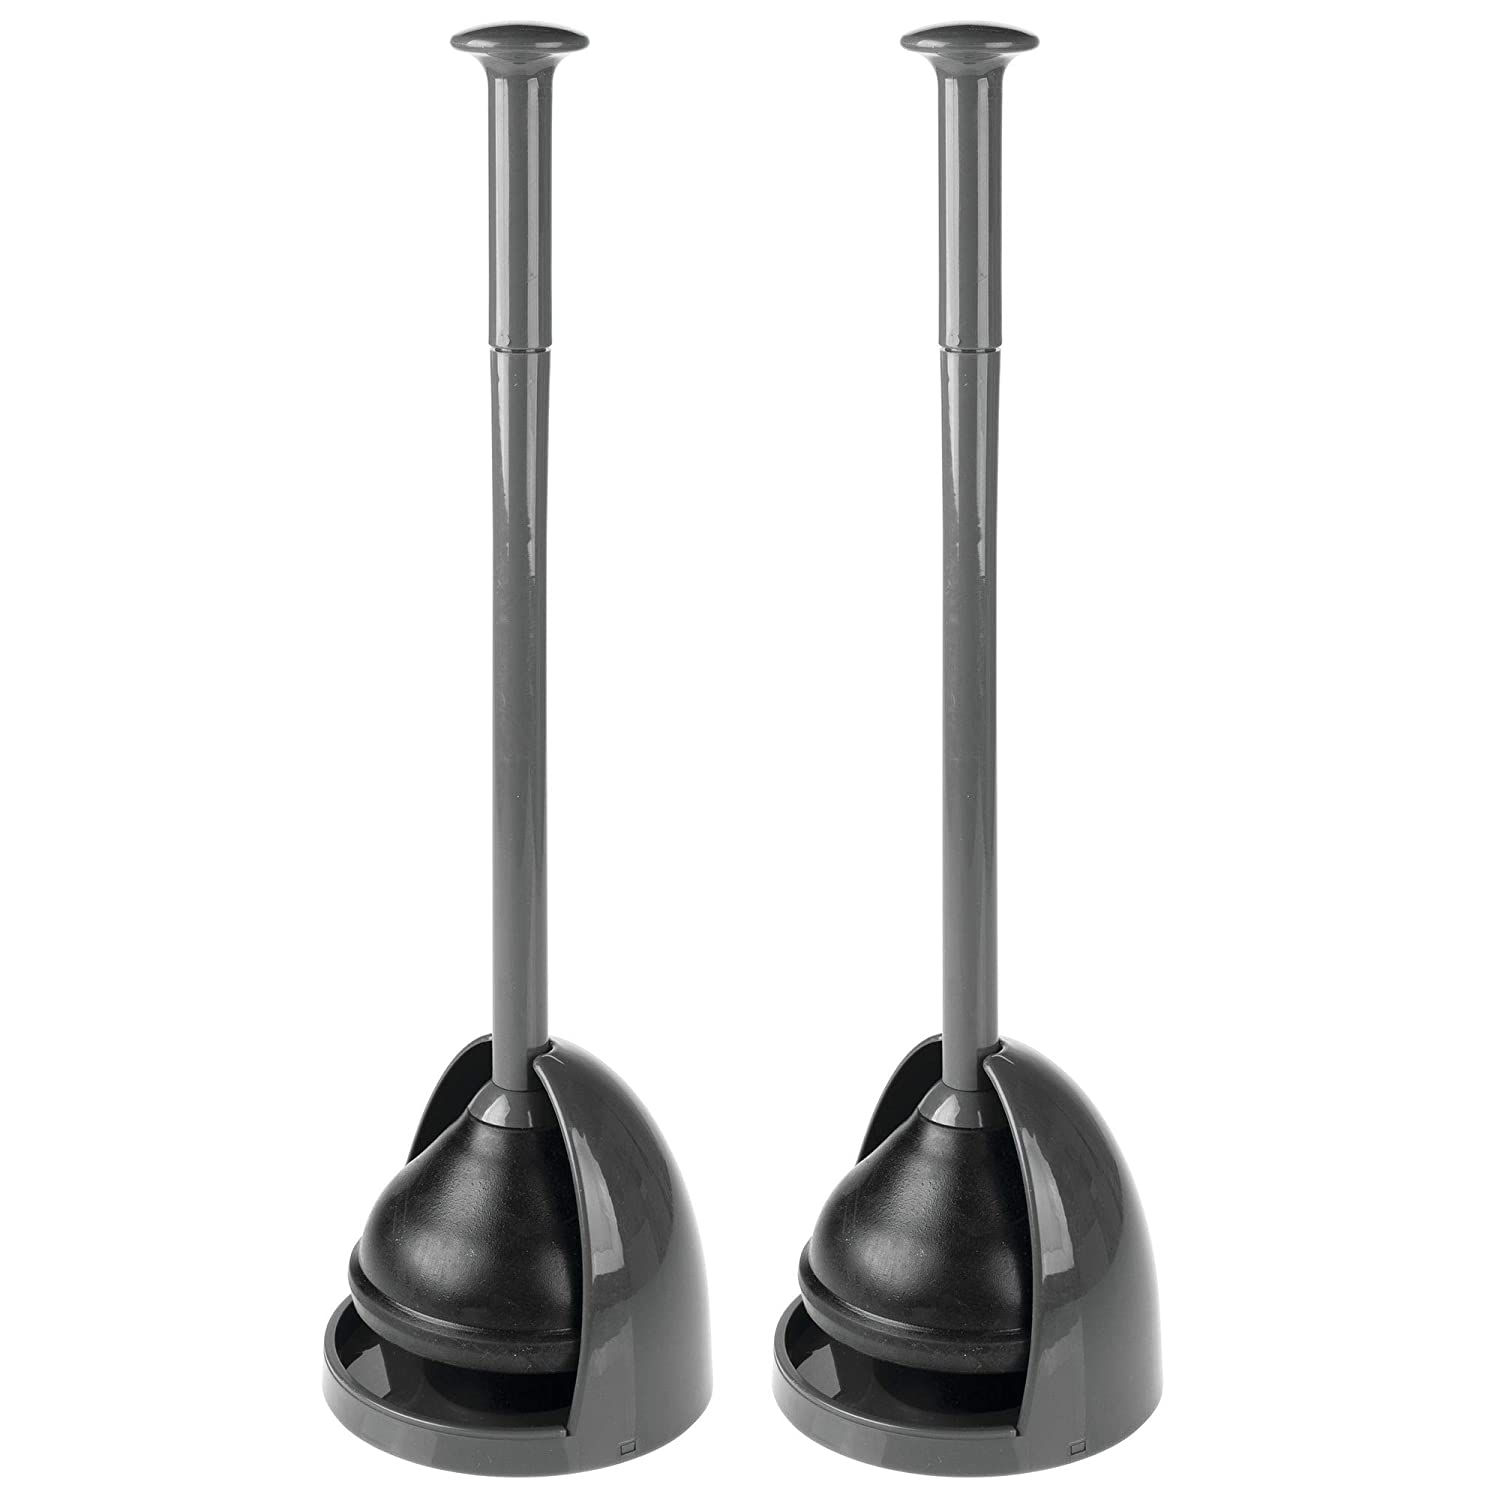 mDesign Plastic Toilet Bowl Plunger Set Drip Tray, Compact Discreet Freestanding Bathroom Storage Organization Caddy Base, Sleek Modern Design - Heavy Duty - 2 Pack, Charcoal/Gray MetroDecor